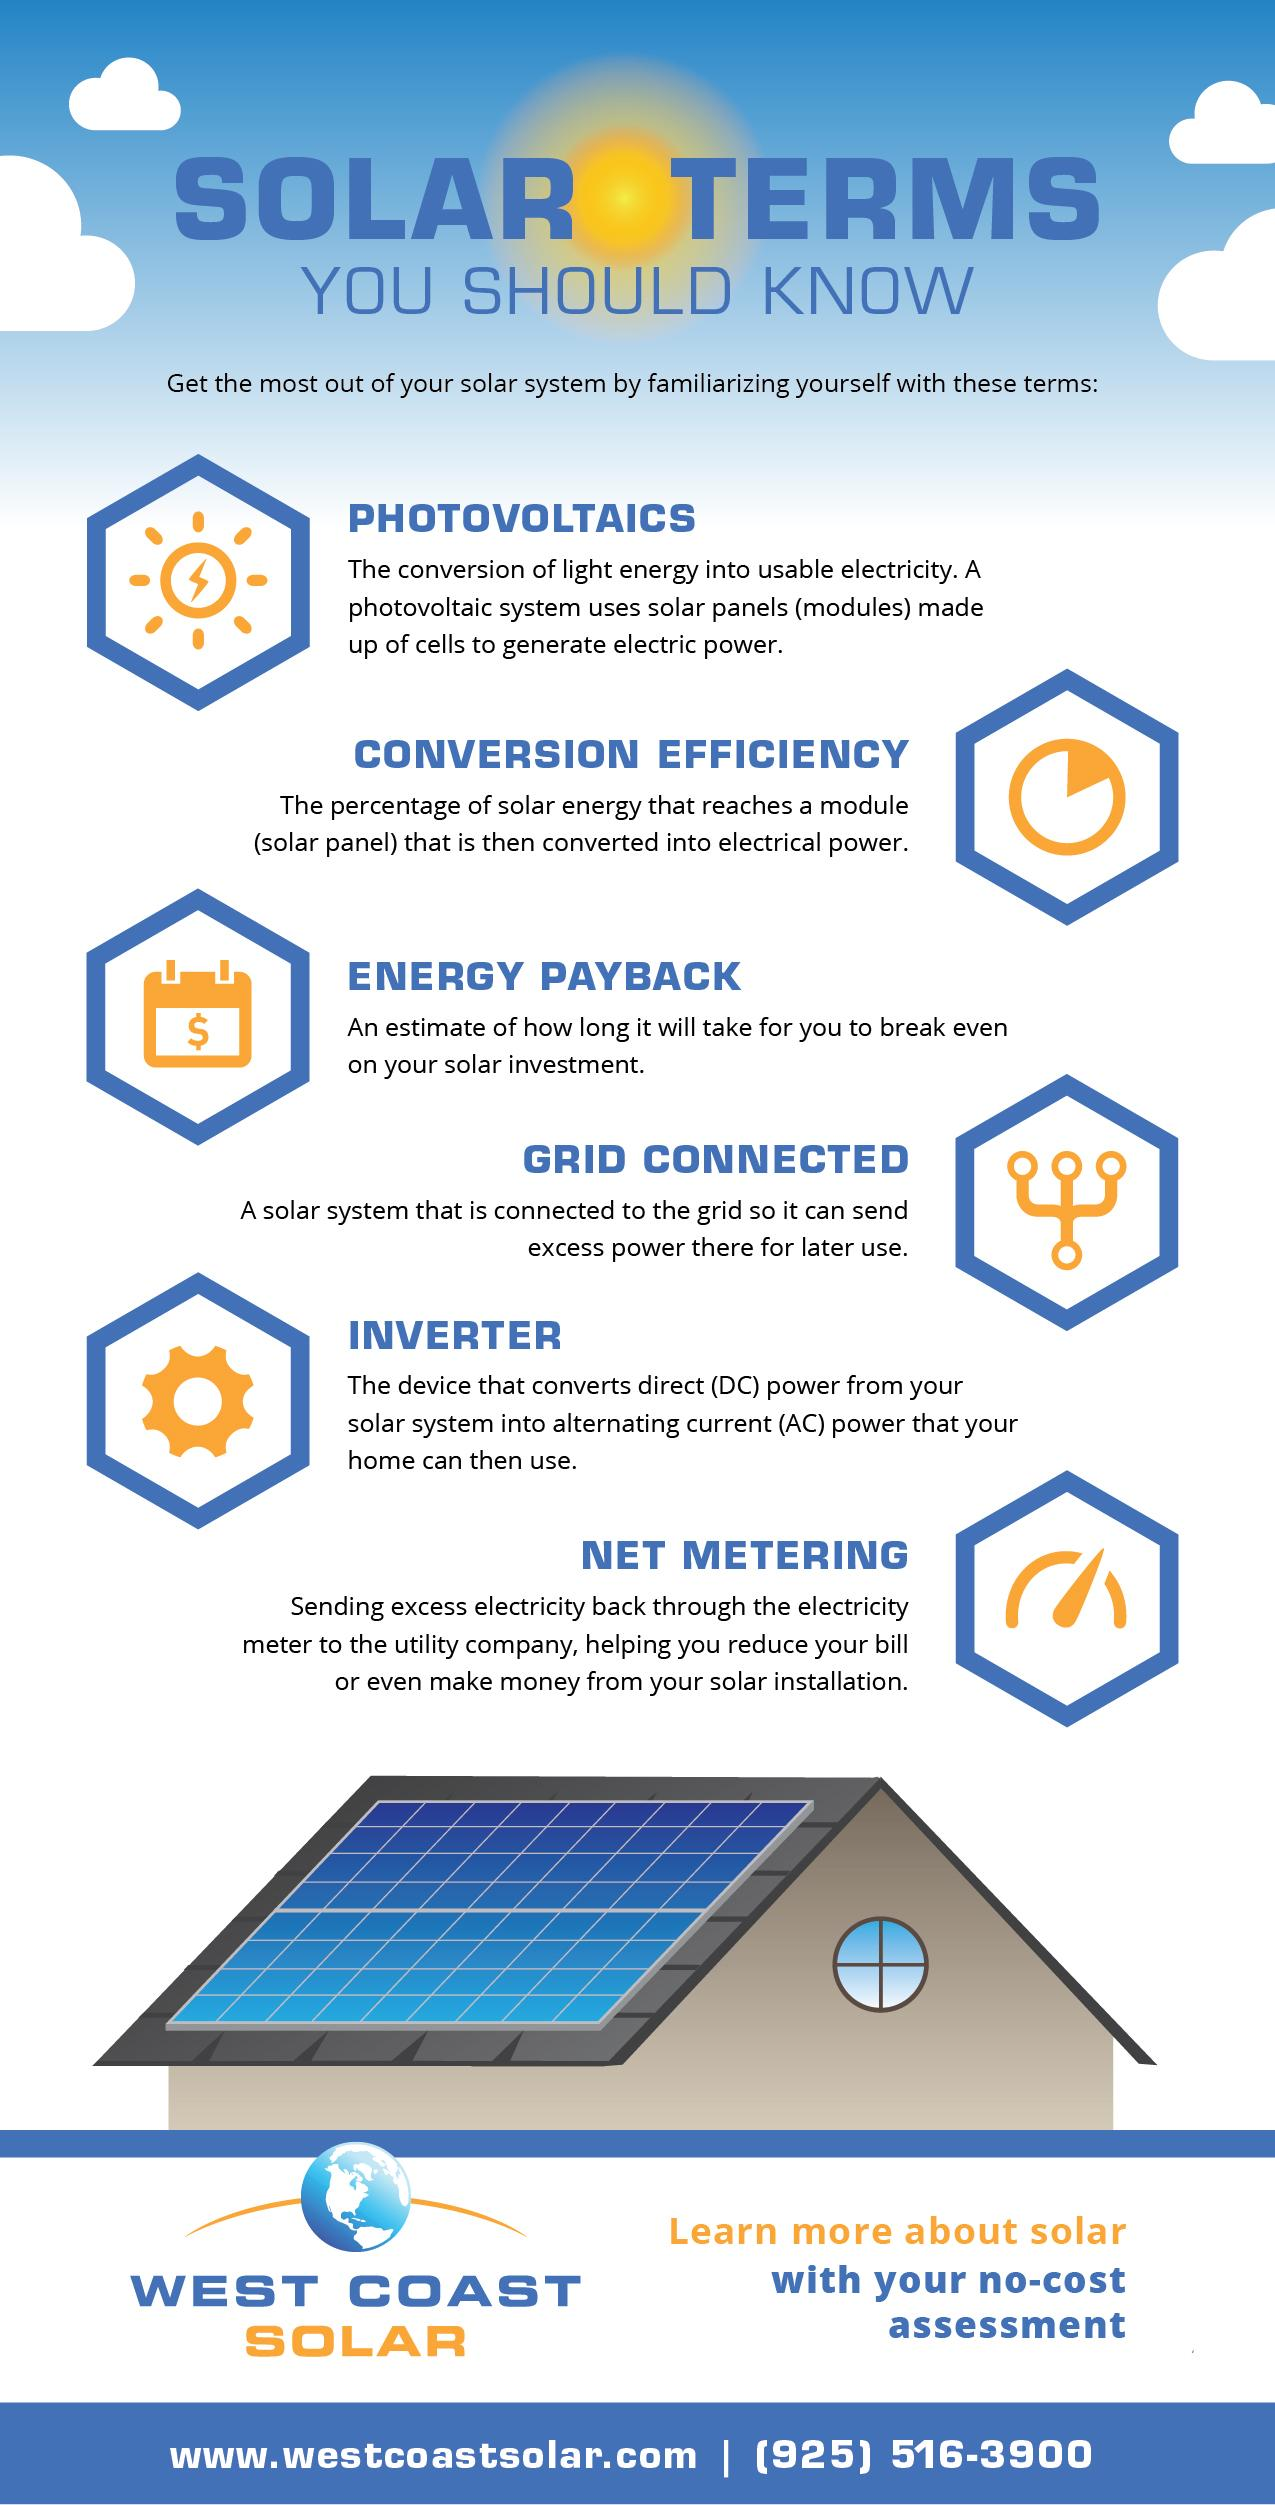 INFOGRAPHIC: Solar Terms You Should Know | West Coast Solar